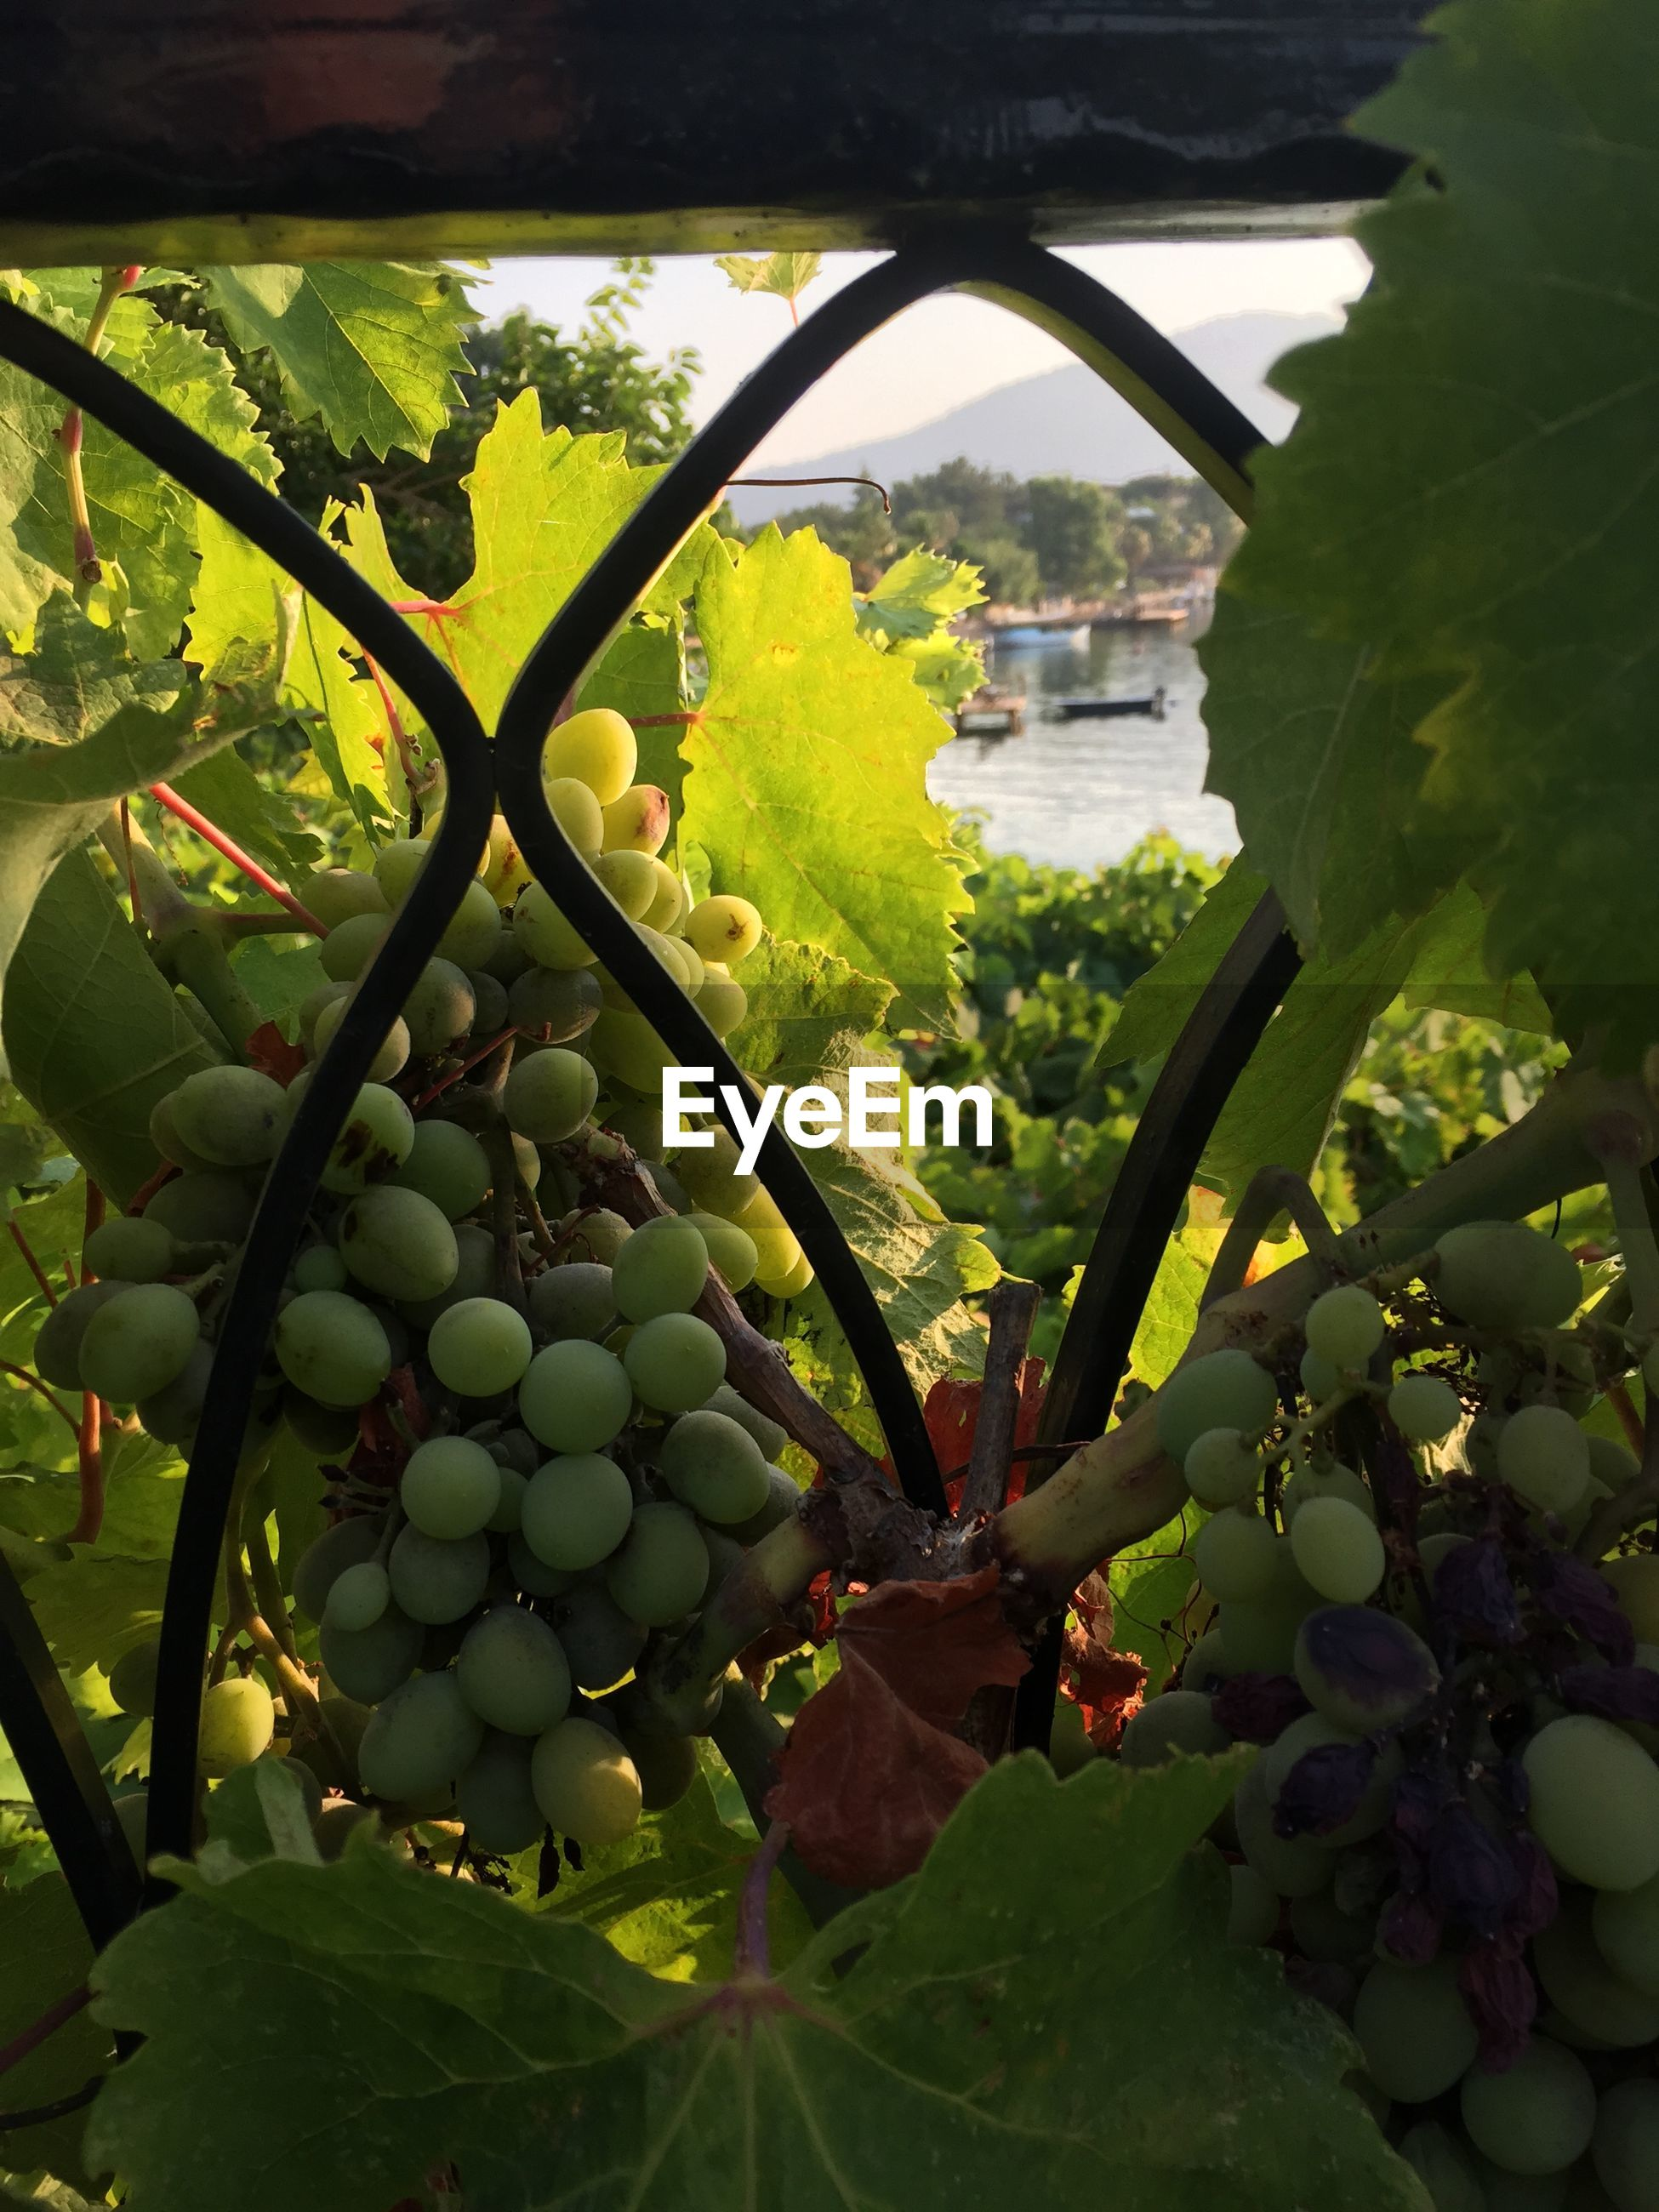 fruit, food and drink, healthy eating, food, freshness, leaf, growth, green color, tree, agriculture, grape, hanging, vineyard, ripe, close-up, bunch, branch, nature, plant, vine